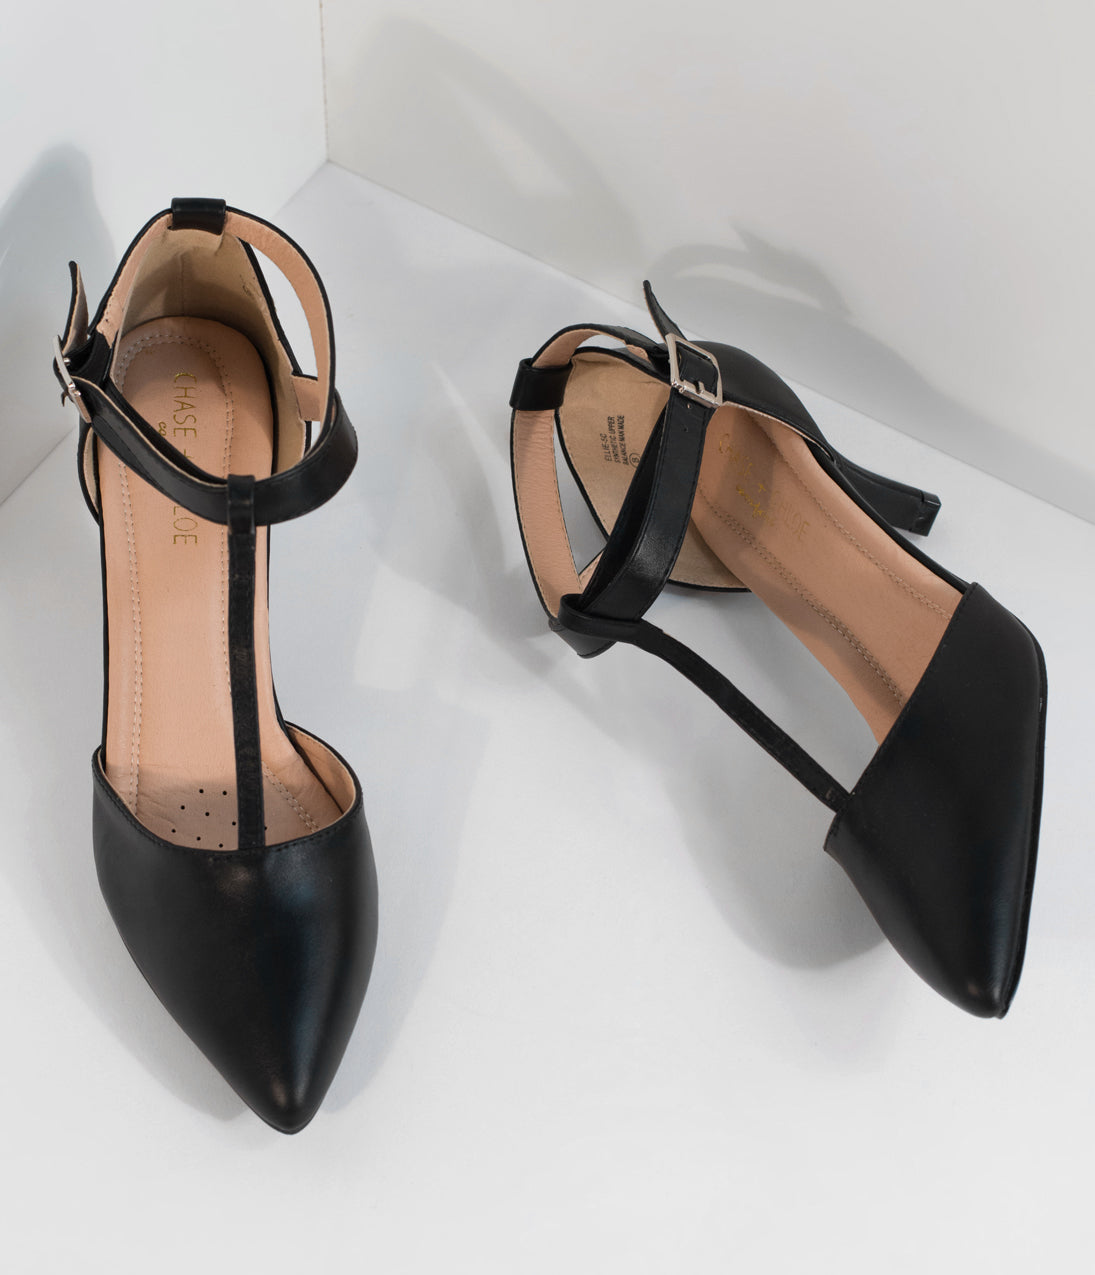 1950s Style Shoes | Heels, Flats, Saddle Shoes Black Leatherette Pointed Toe Ellie T-Strap Heels $46.00 AT vintagedancer.com